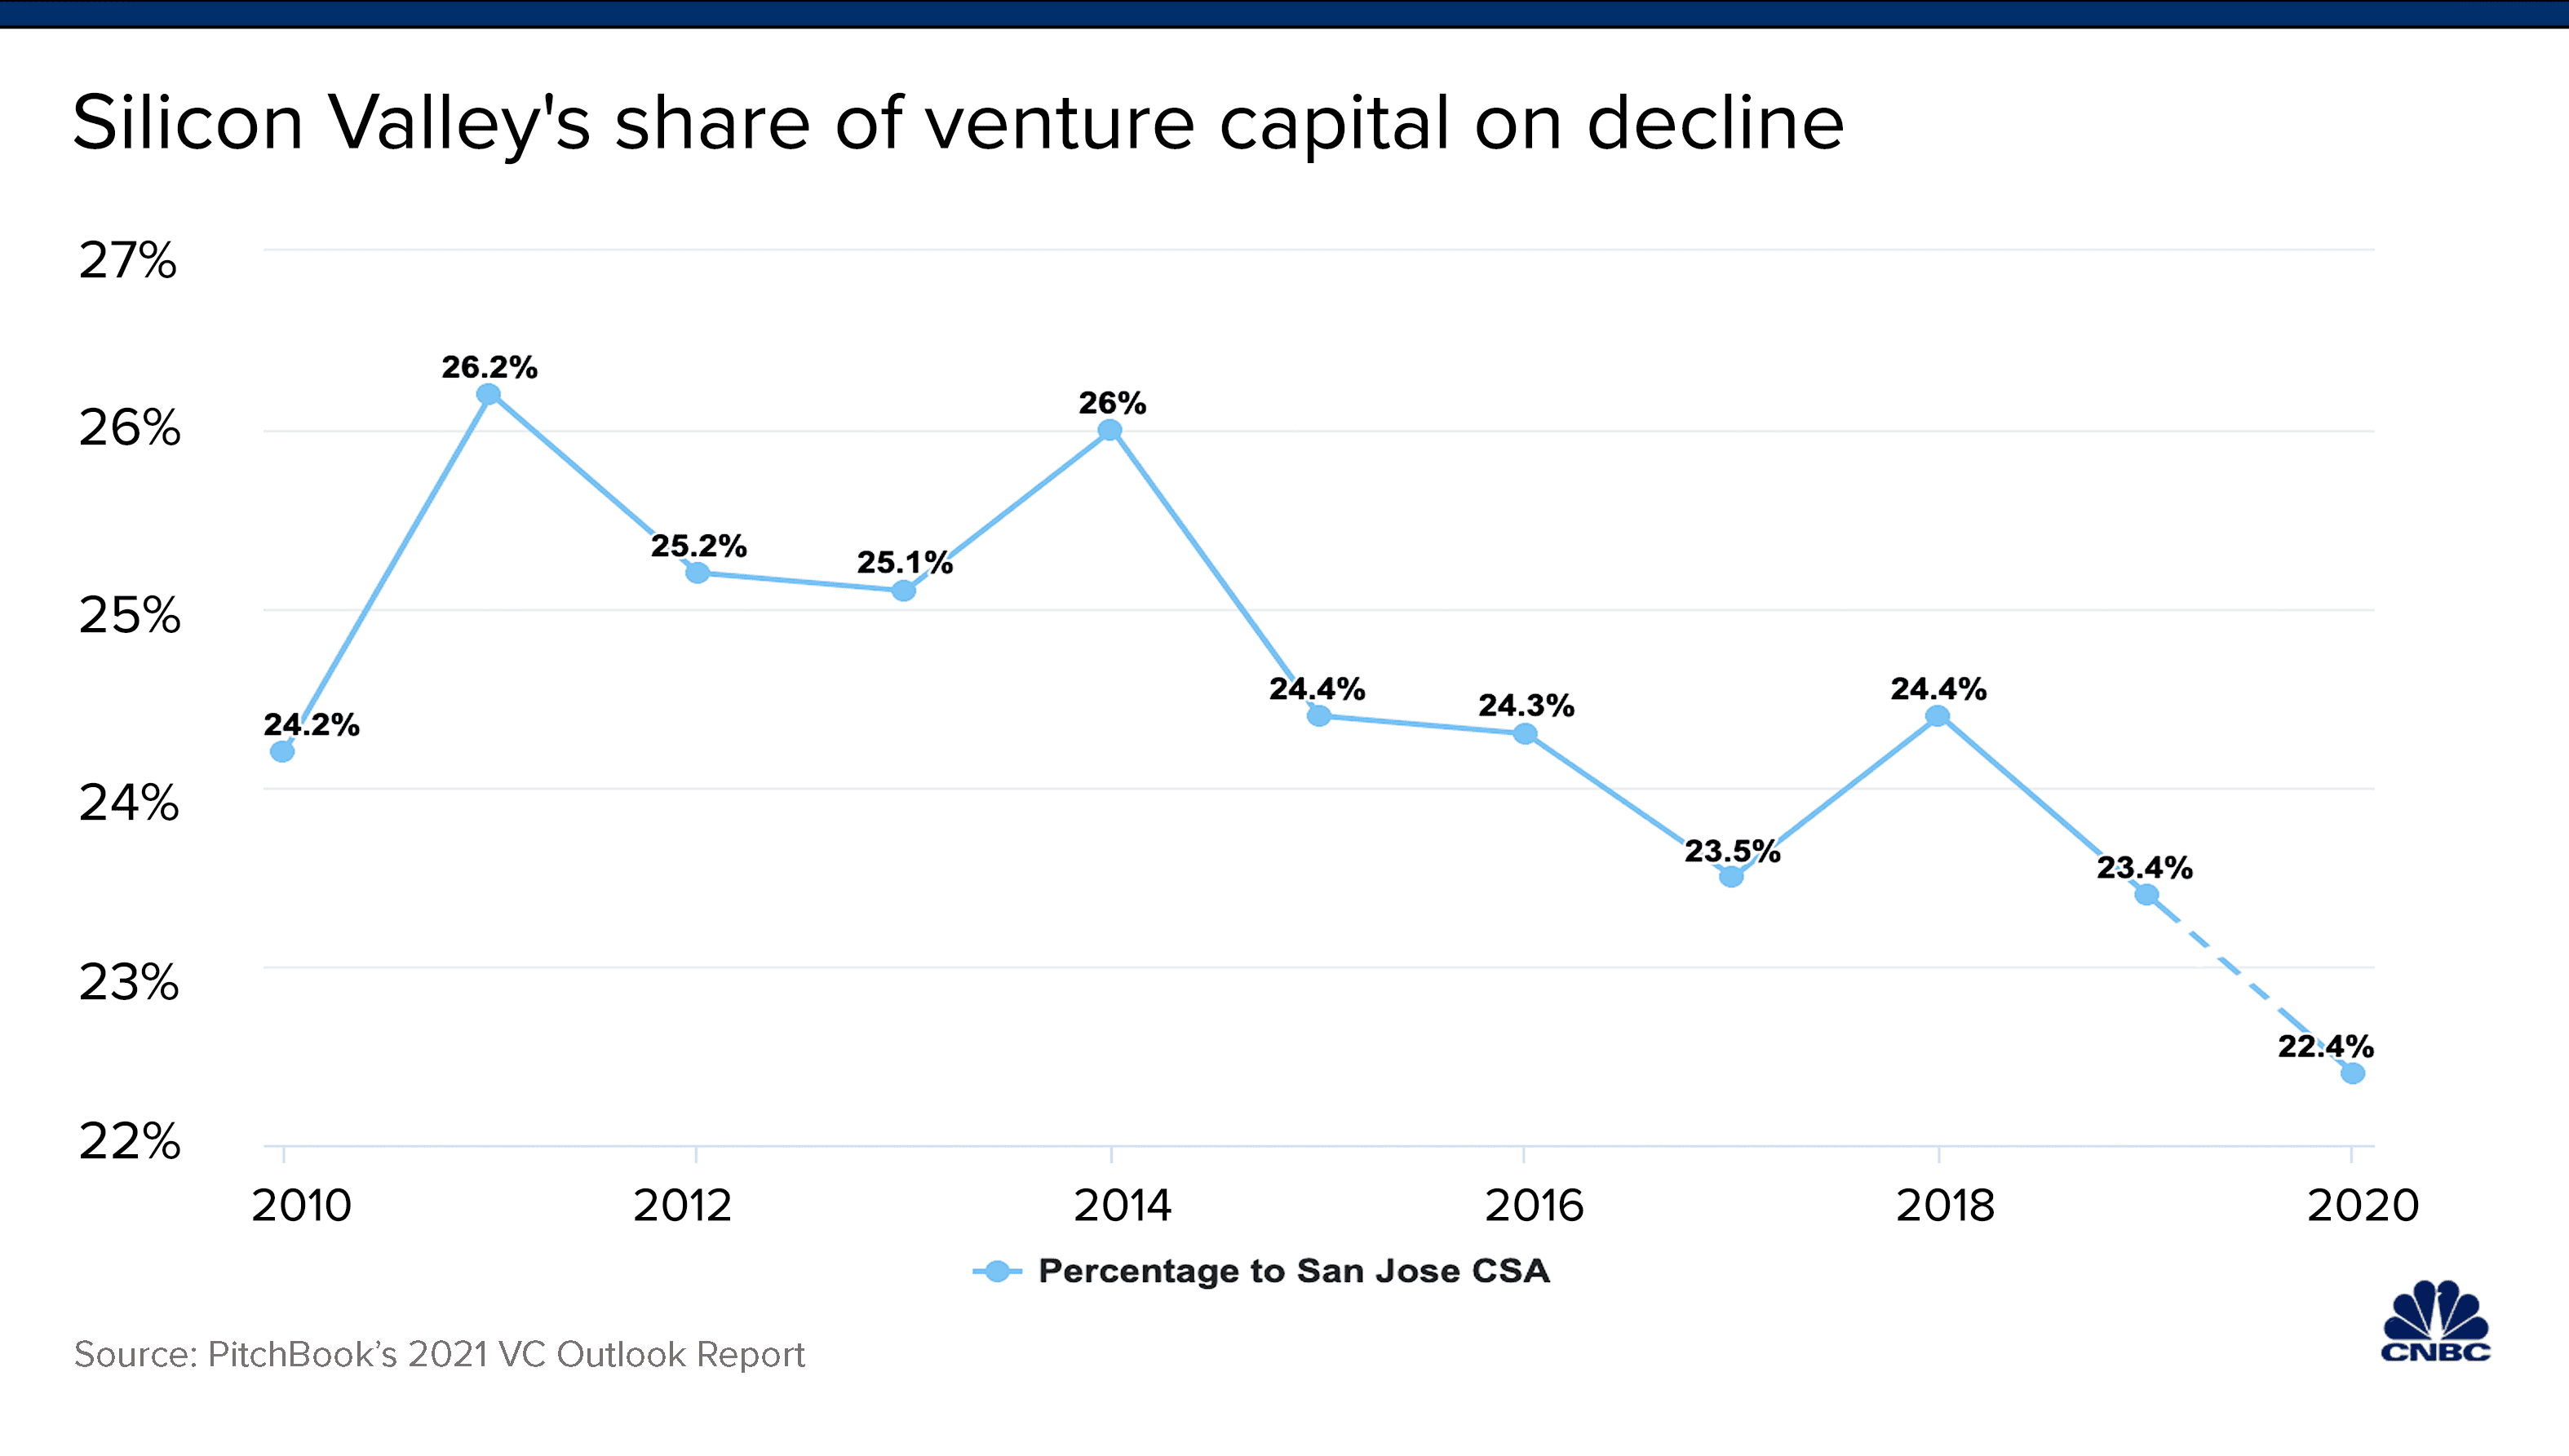 silicon-valley-vc-share-min.png